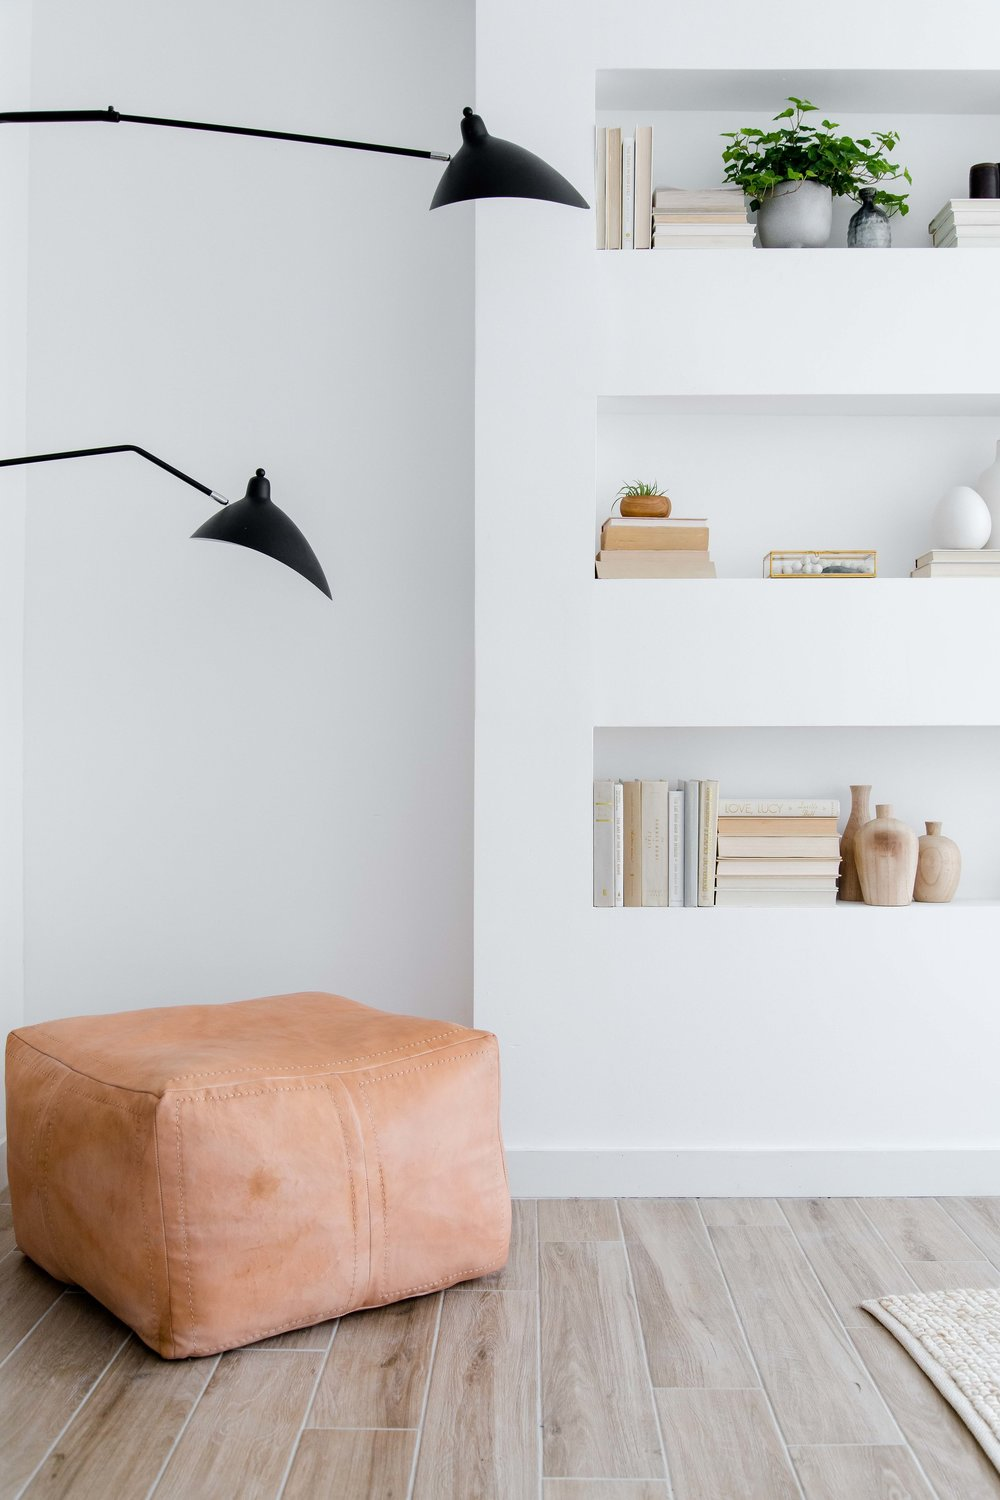 modern built in shelving with wall sconce - the habitat collective interior design - #projectpeachy